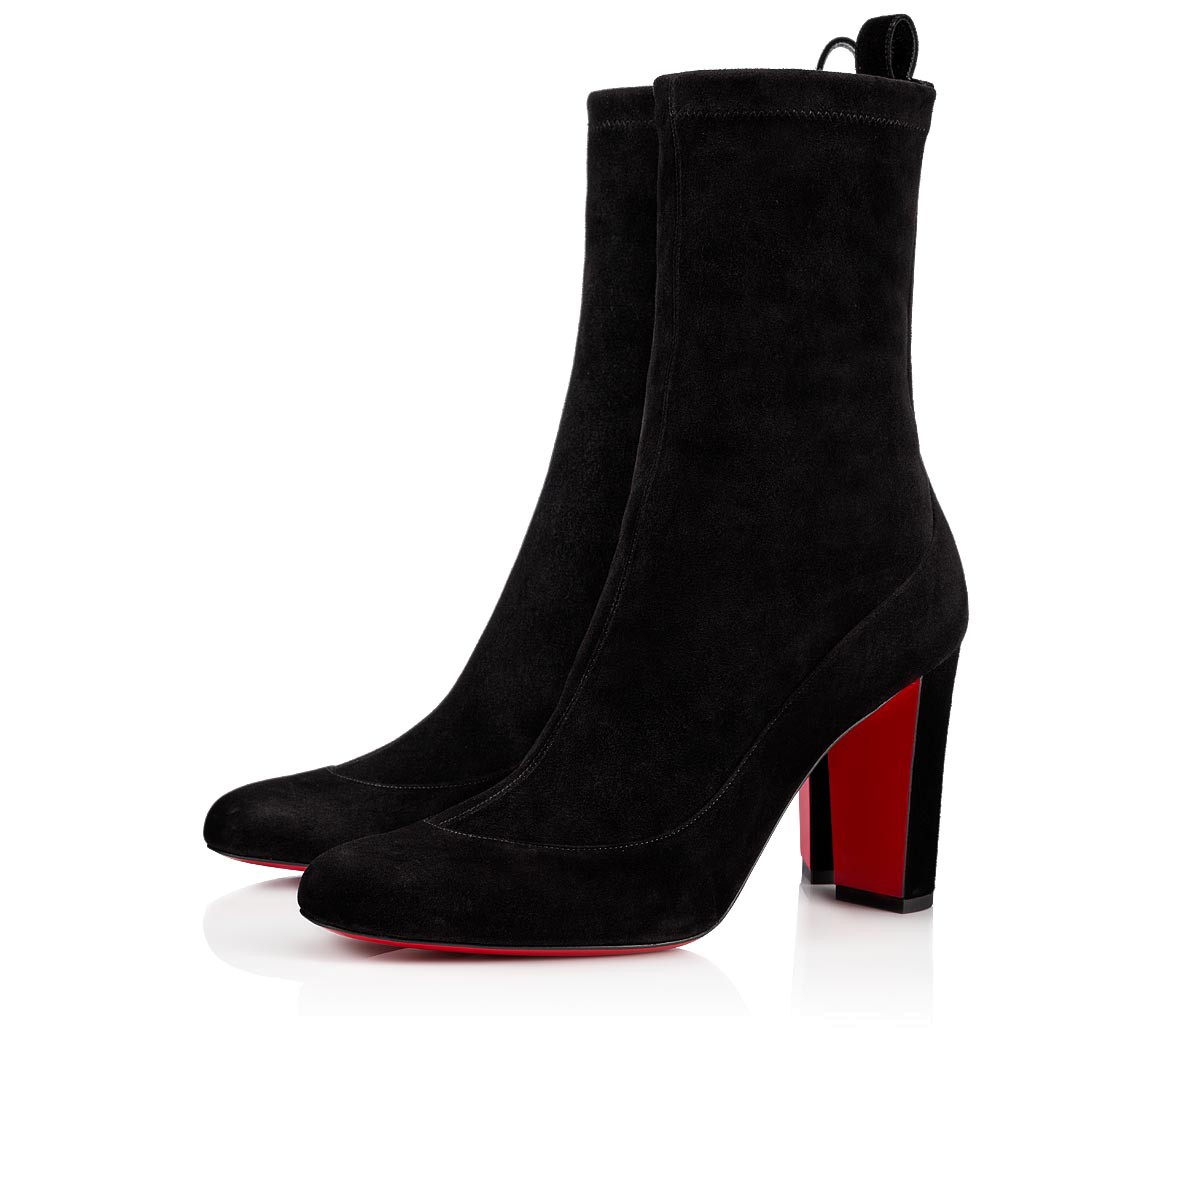 ef93ac9d0f7 Gena Bootie 85 Black Suede - Women Shoes - Christian Louboutin